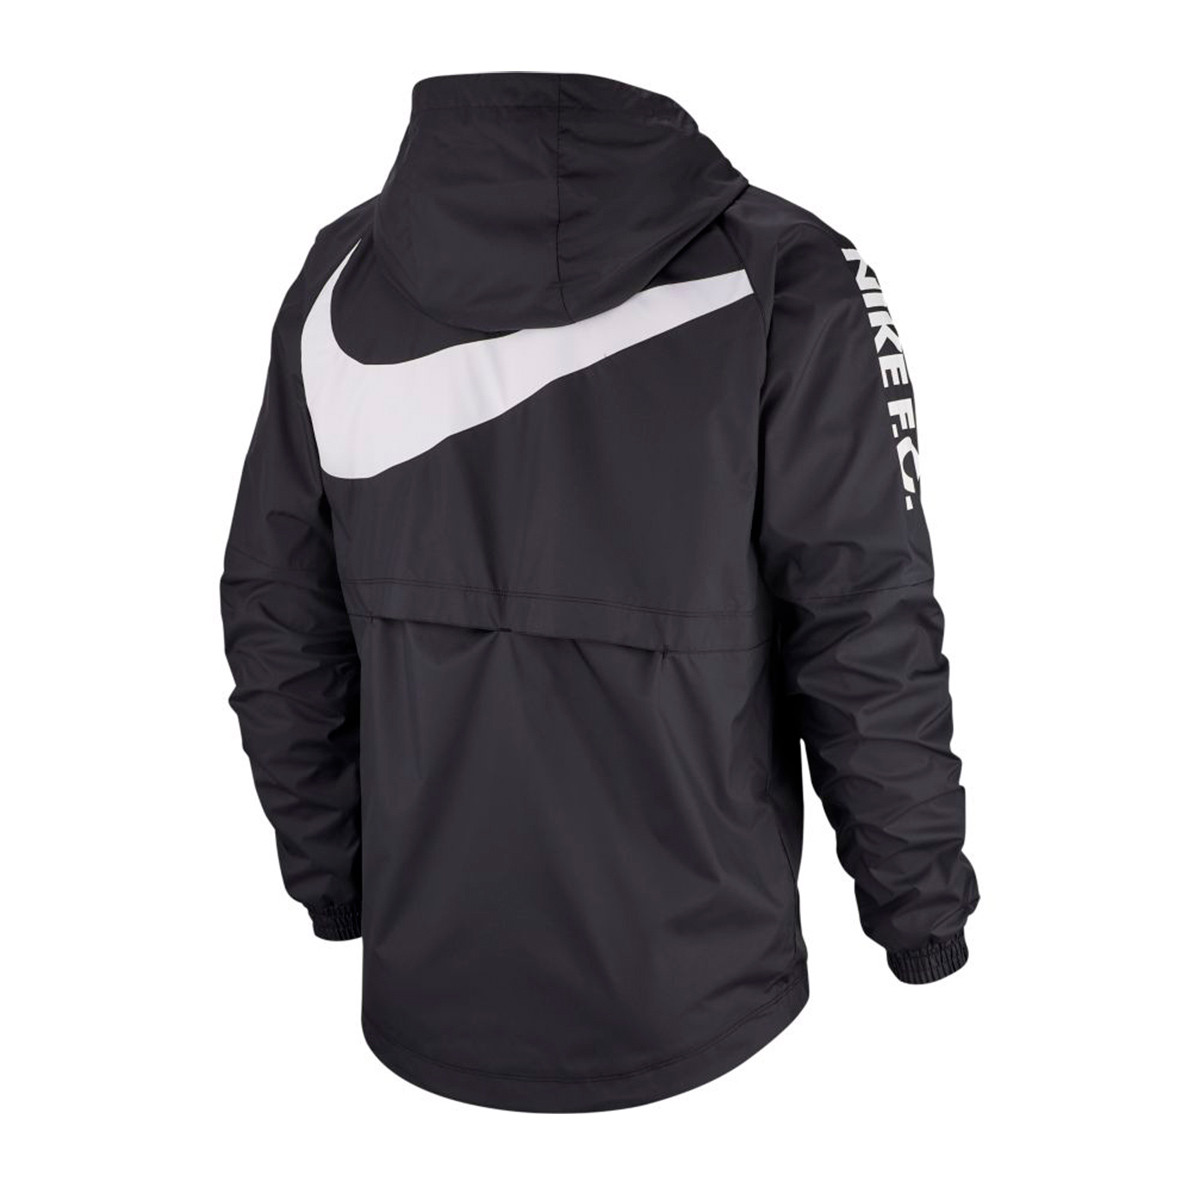 classic first rate run shoes Nike FC All Weather Fan Jacket